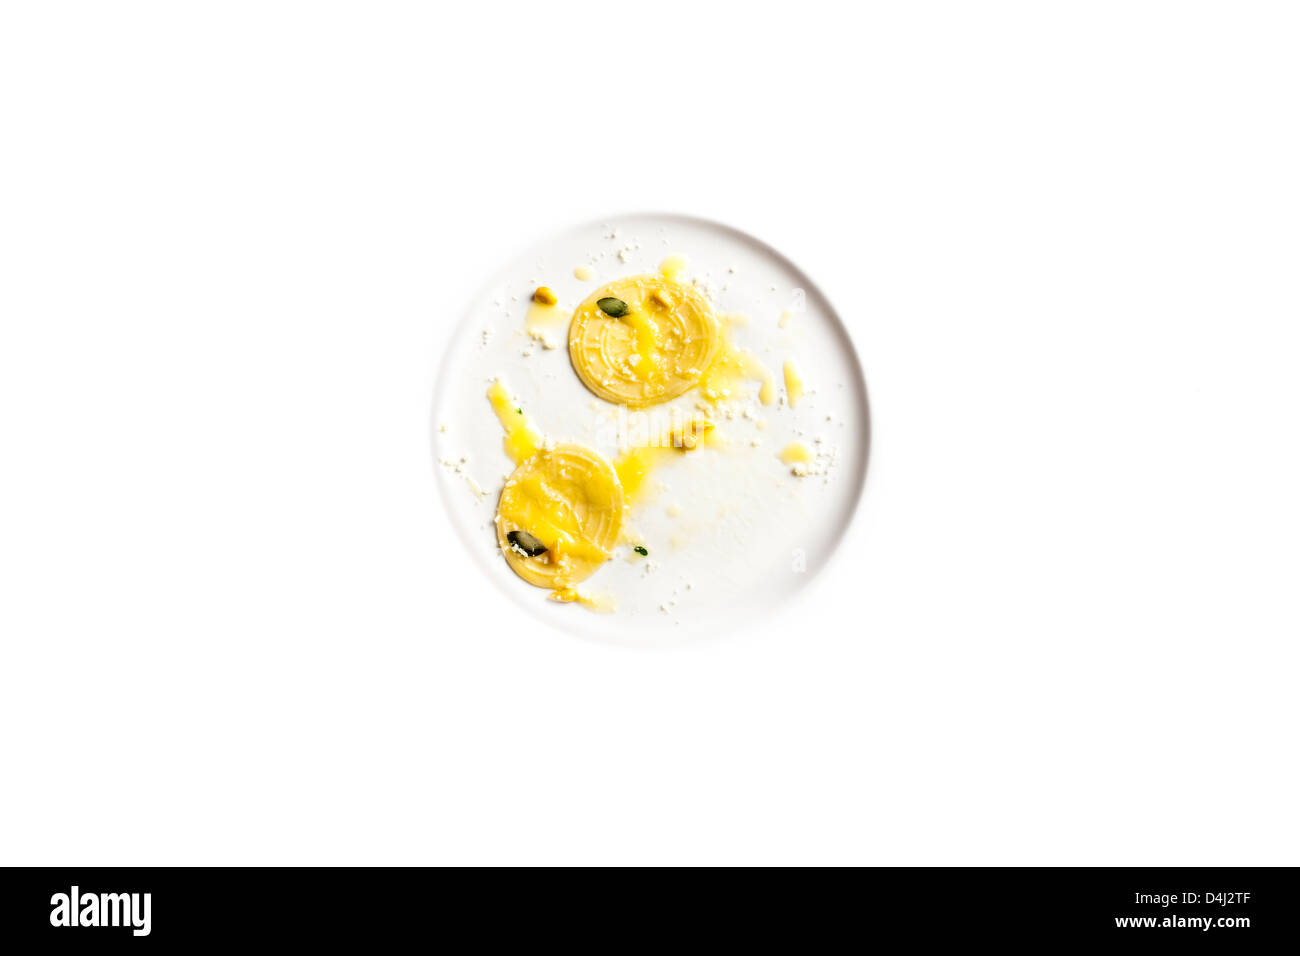 Corzetti - Stamped homemade pasta from the Liguria region of Italy served with butter, Marjoram and toasted pinenuts. - Stock Image